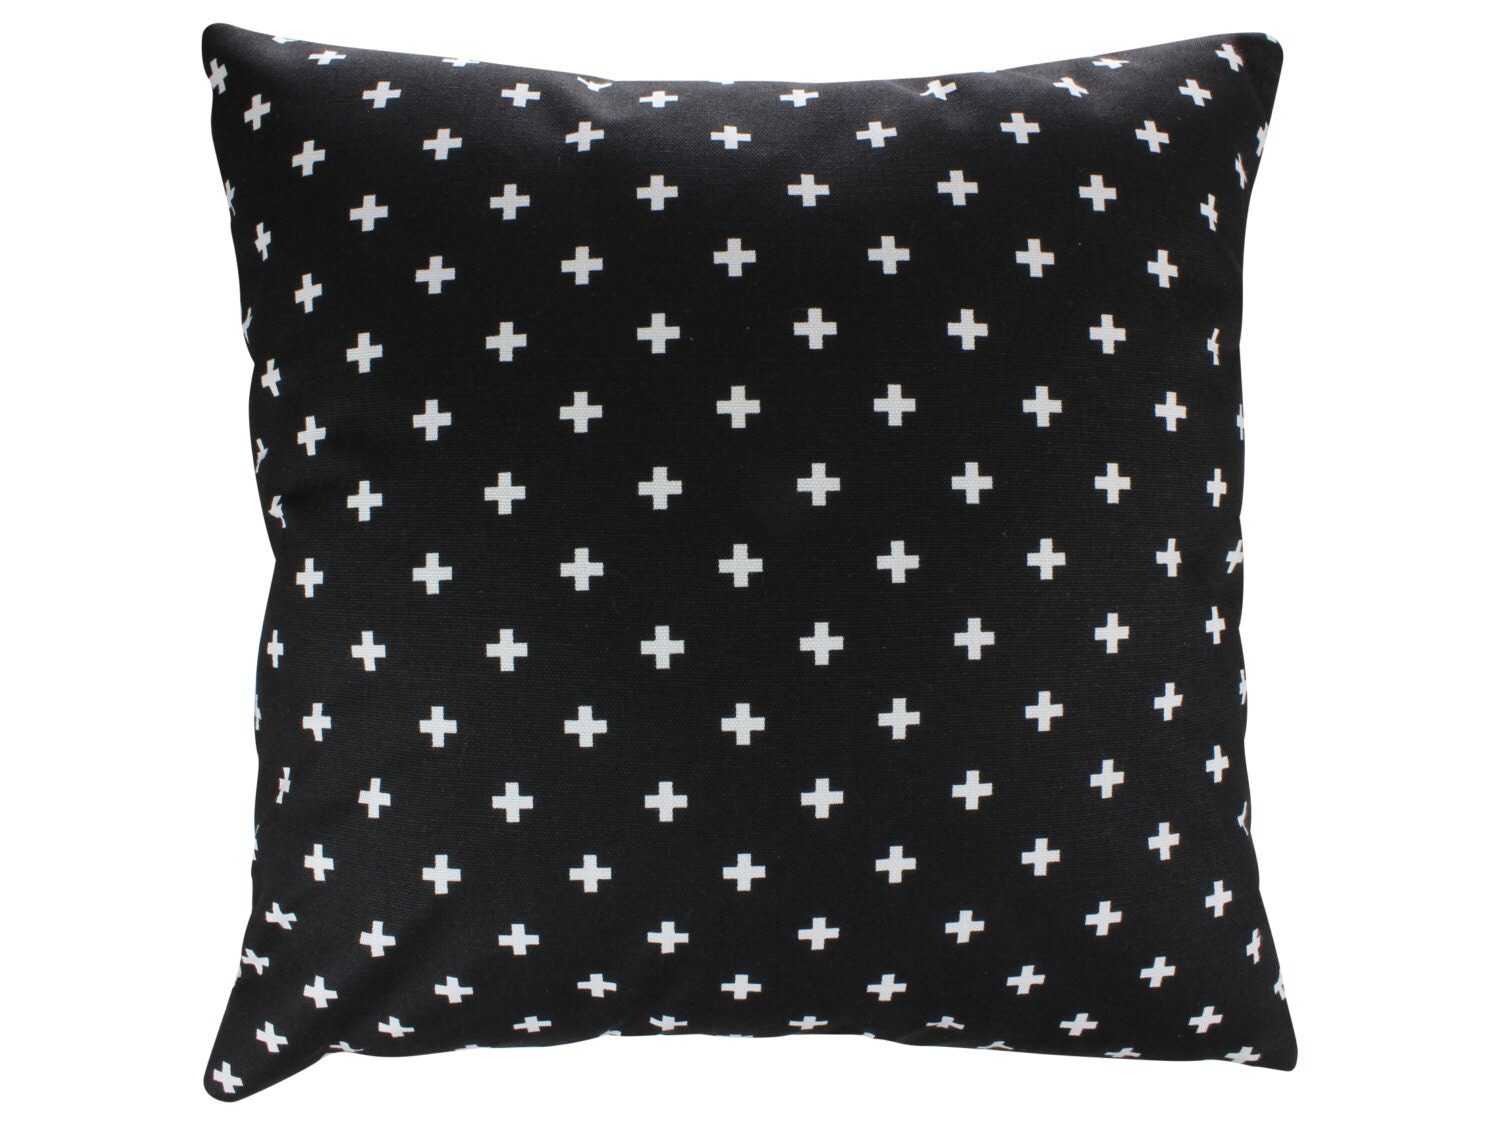 Decorative Pillows With Crosses : Black and White Swiss Cross Decorative Throw Pillow Cover Mini